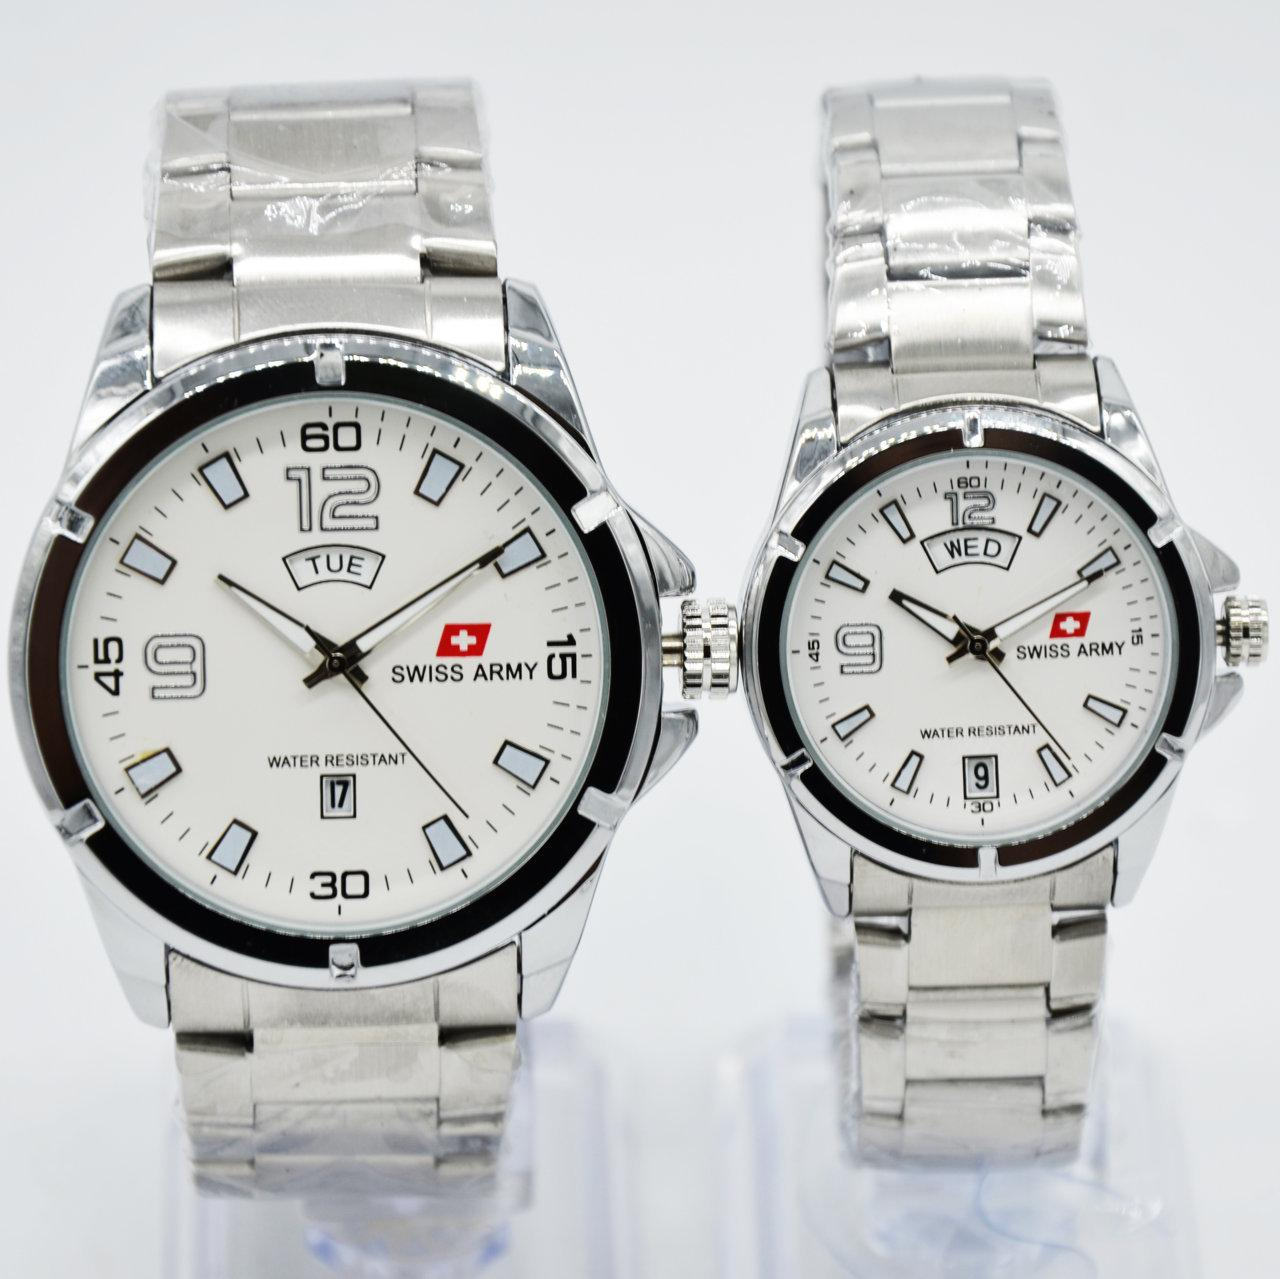 Swiss Army Couple Watch - SA7392 - Jam Tangan Couple - Stainlesstell Strap